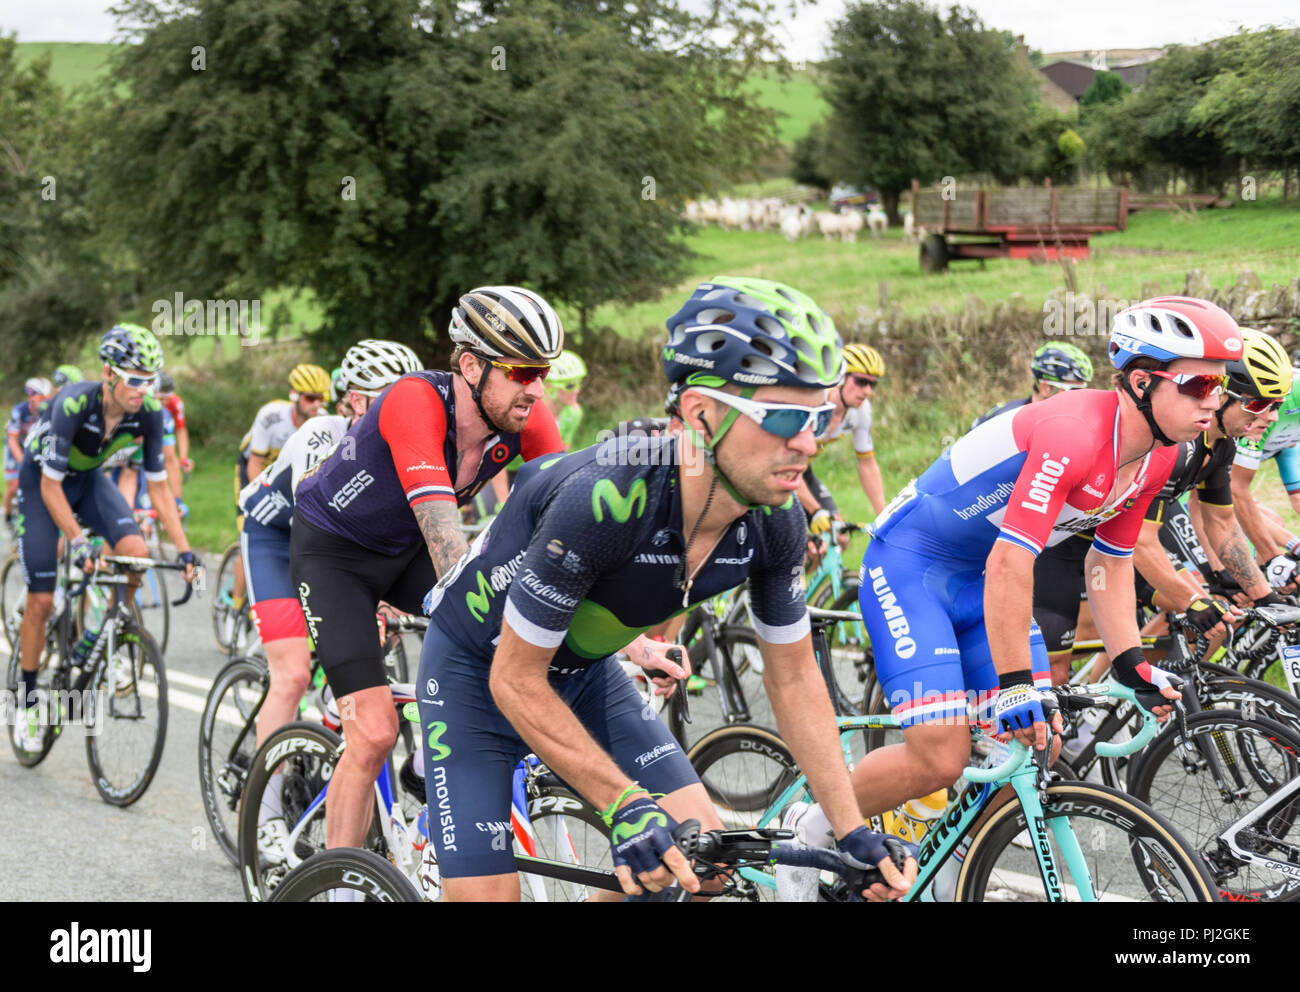 2016 Tour of Britain cyclists, featuring Bradley Wiggins, riding towards Macclesfield, Cheshire - Stock Image